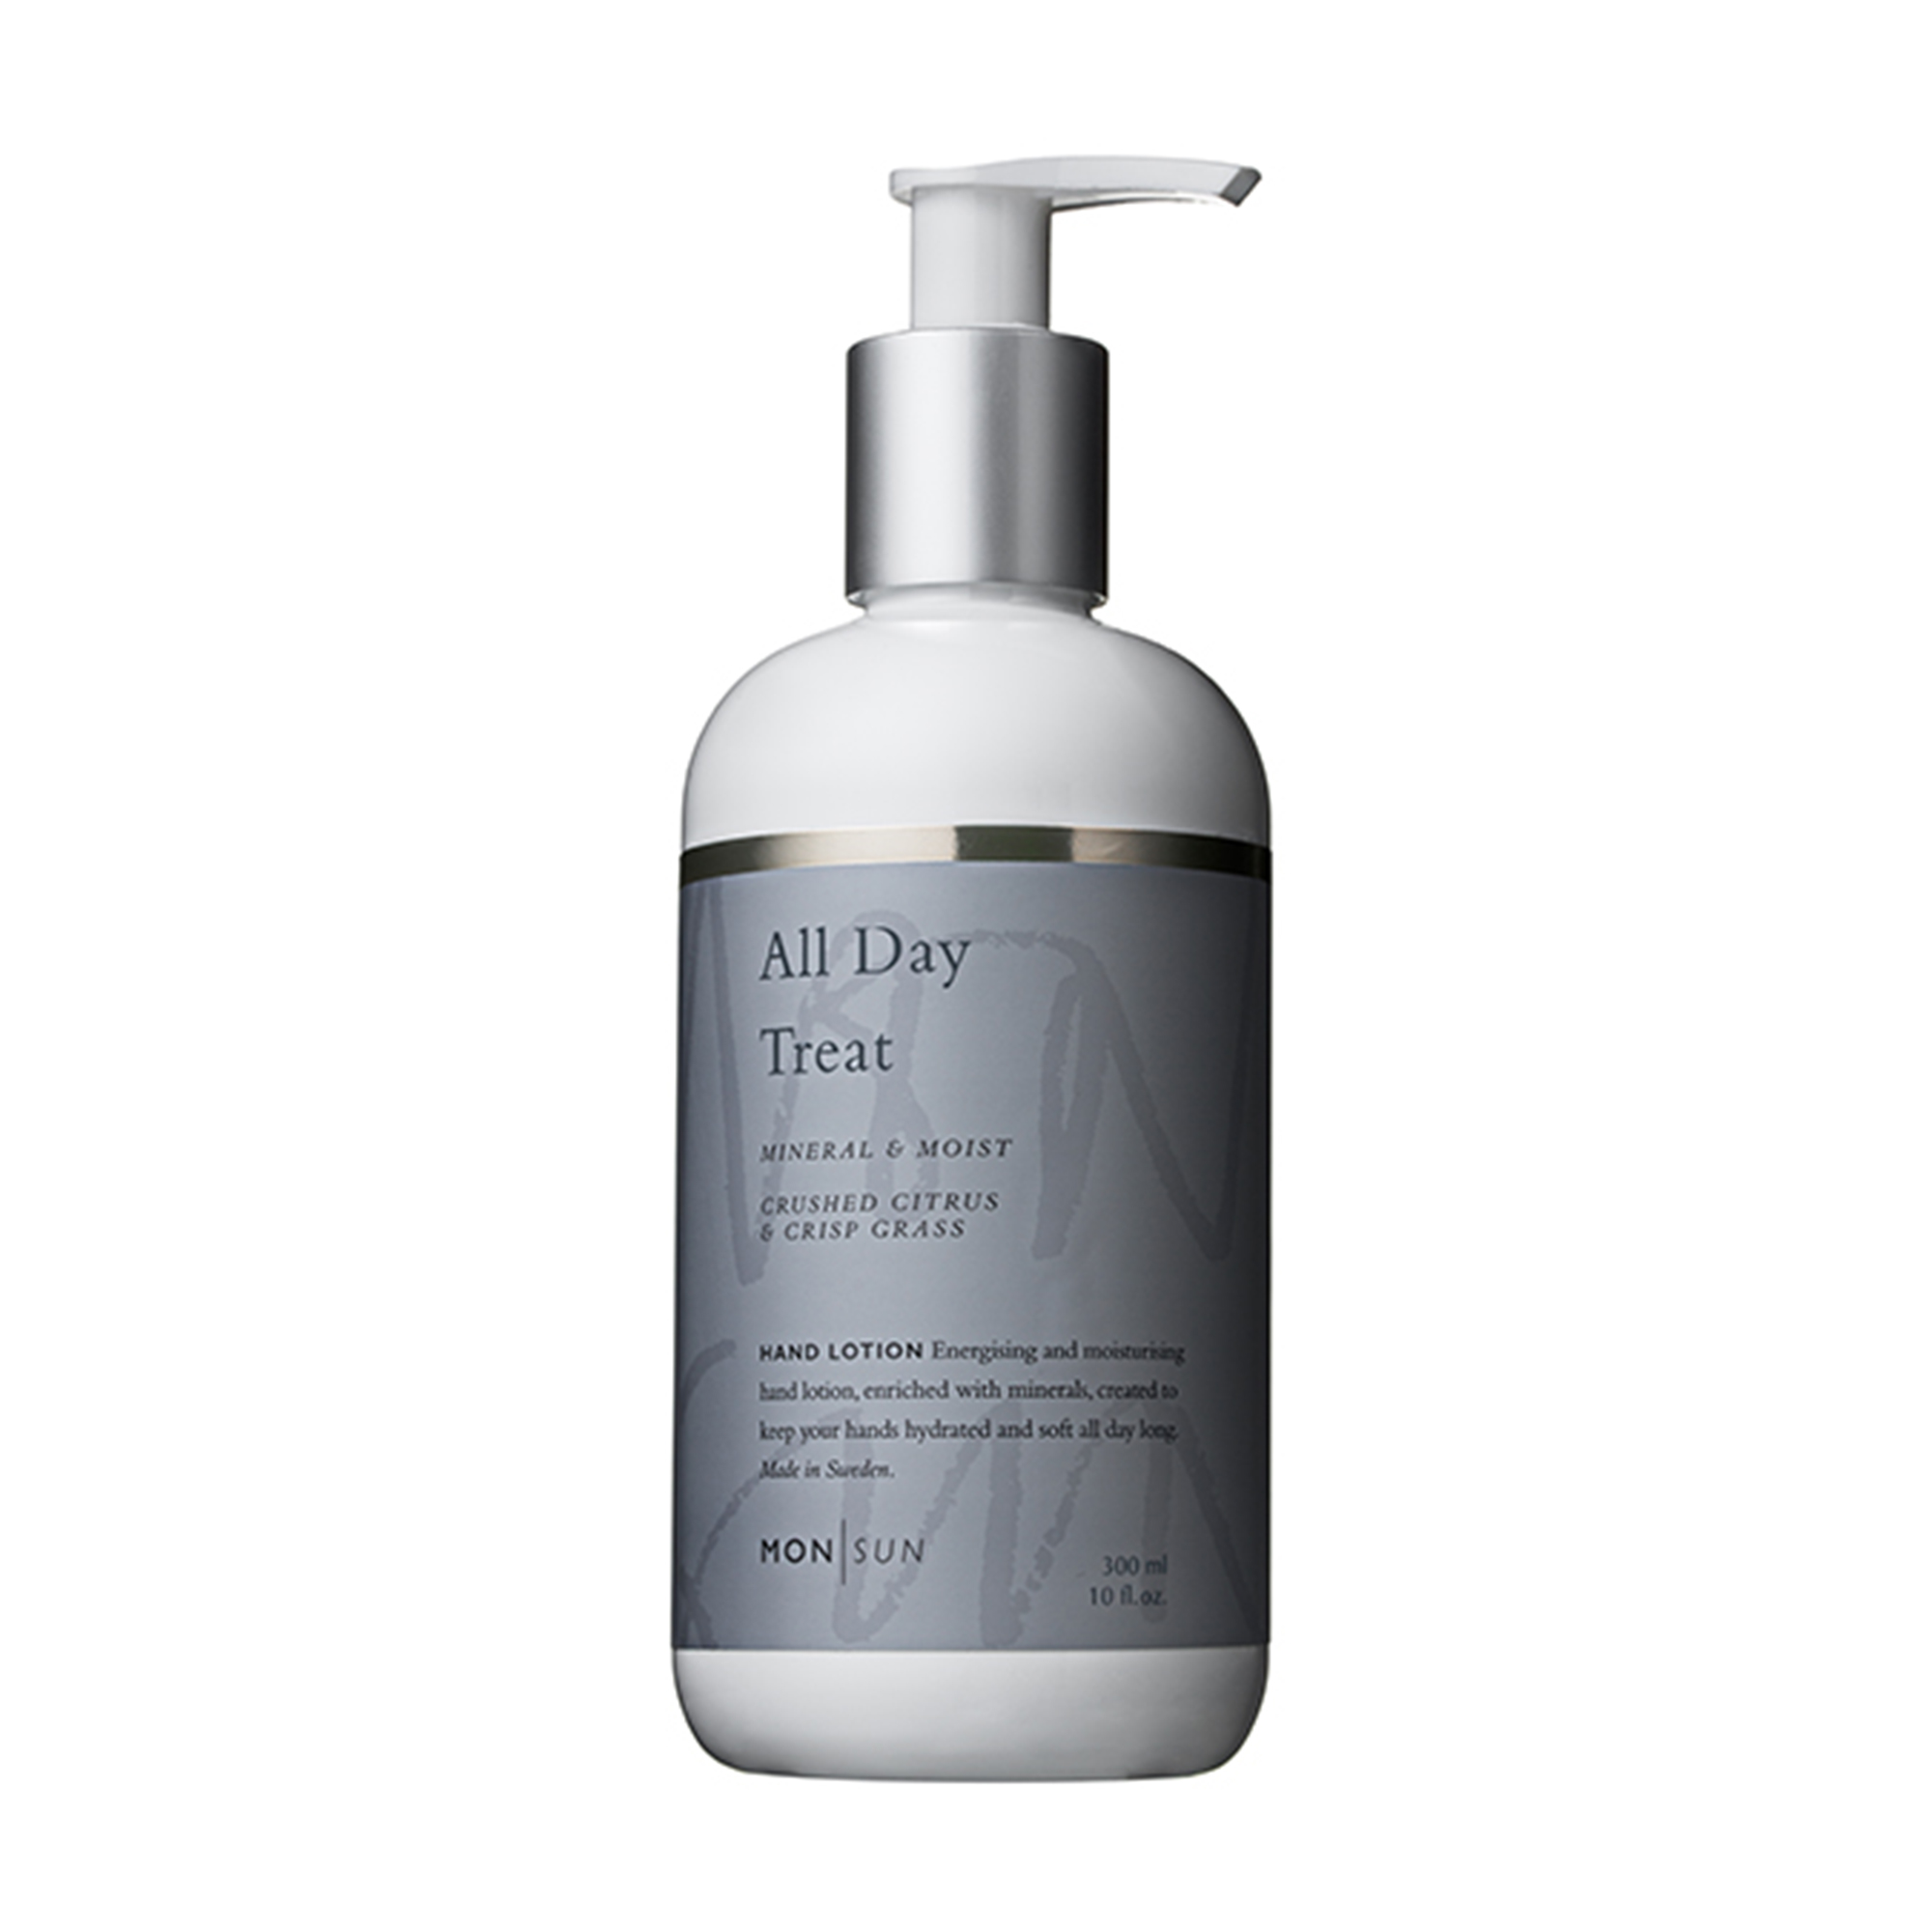 All Day Treat Mineral & Moist Hand Lotion 300ml